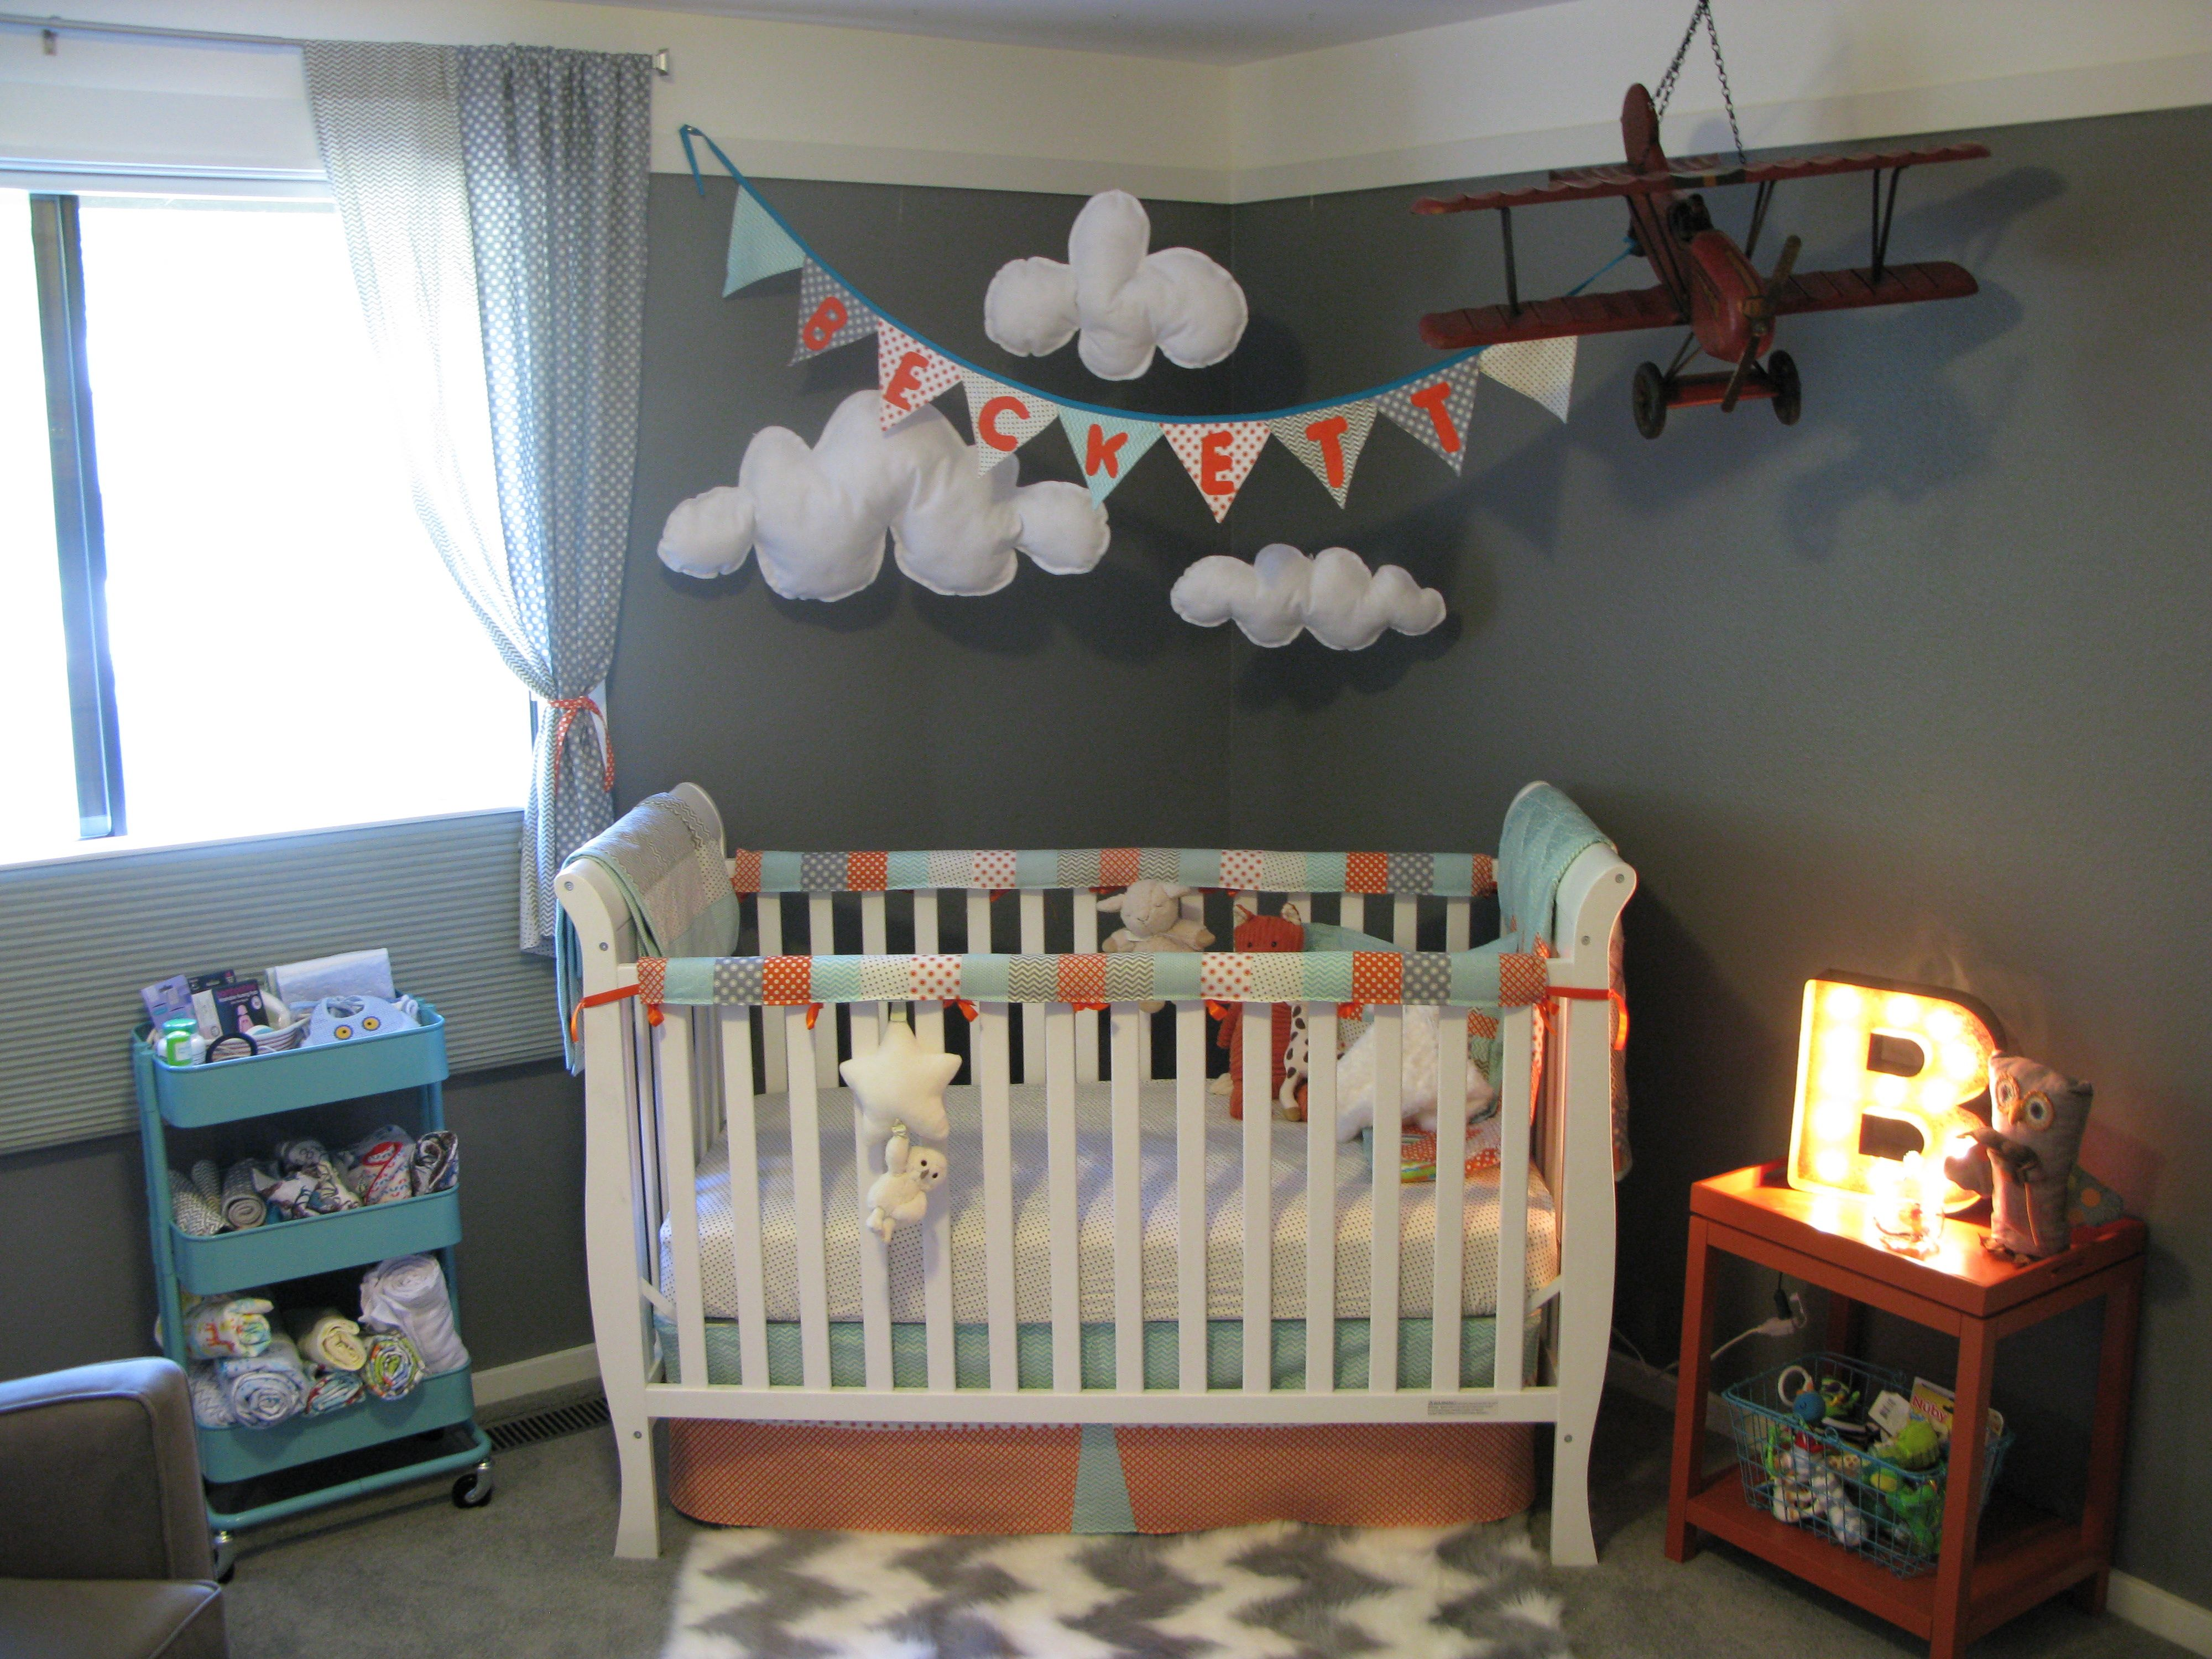 Away We Go Vintage Travel Themed Nursery Decoracion Habitacion Bebe Decoracion Bebe Decoracion Recamara